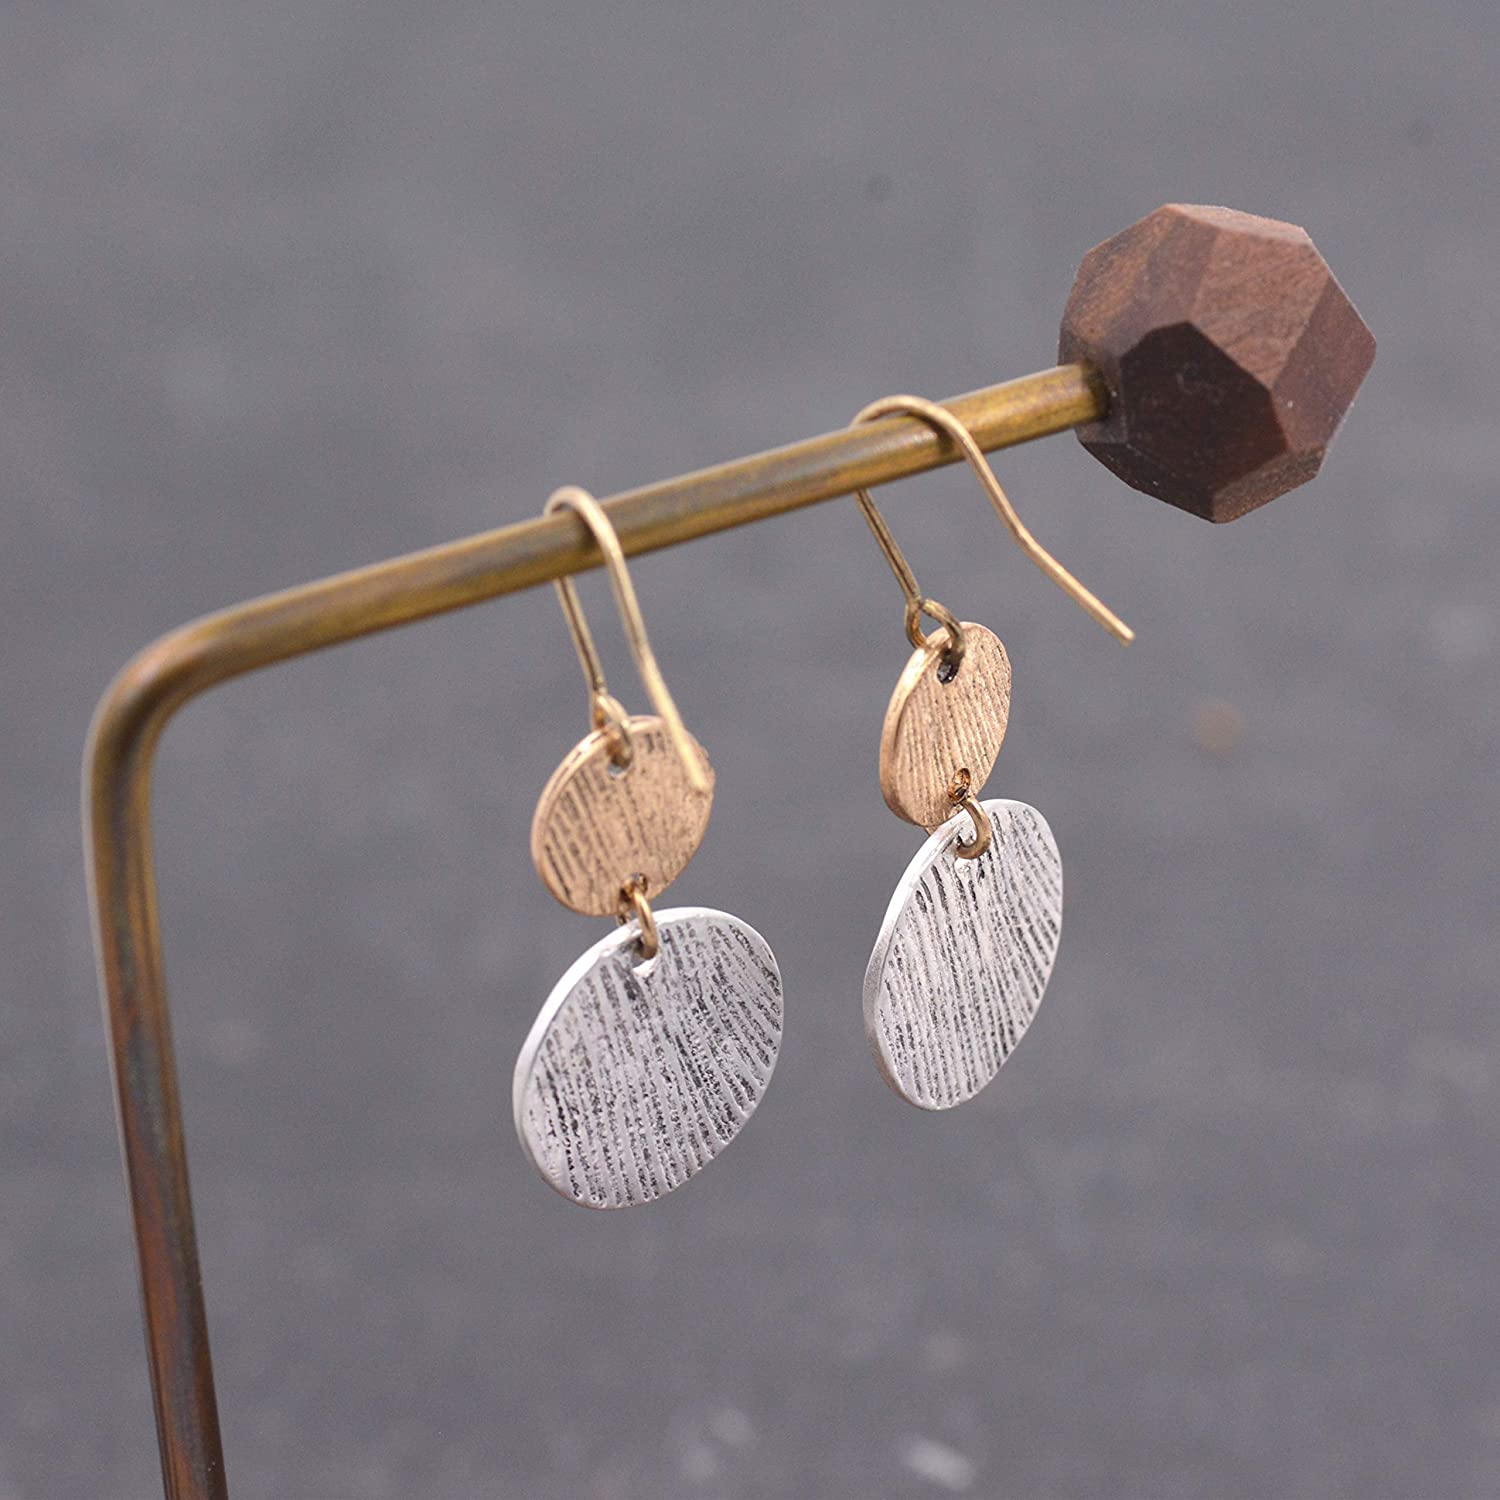 Simple Geometry Dangle Earrings Hammered Effect Gold and Silver Minimalist Circle Disks Drop Earrings with Mixed Metal Textured Finish